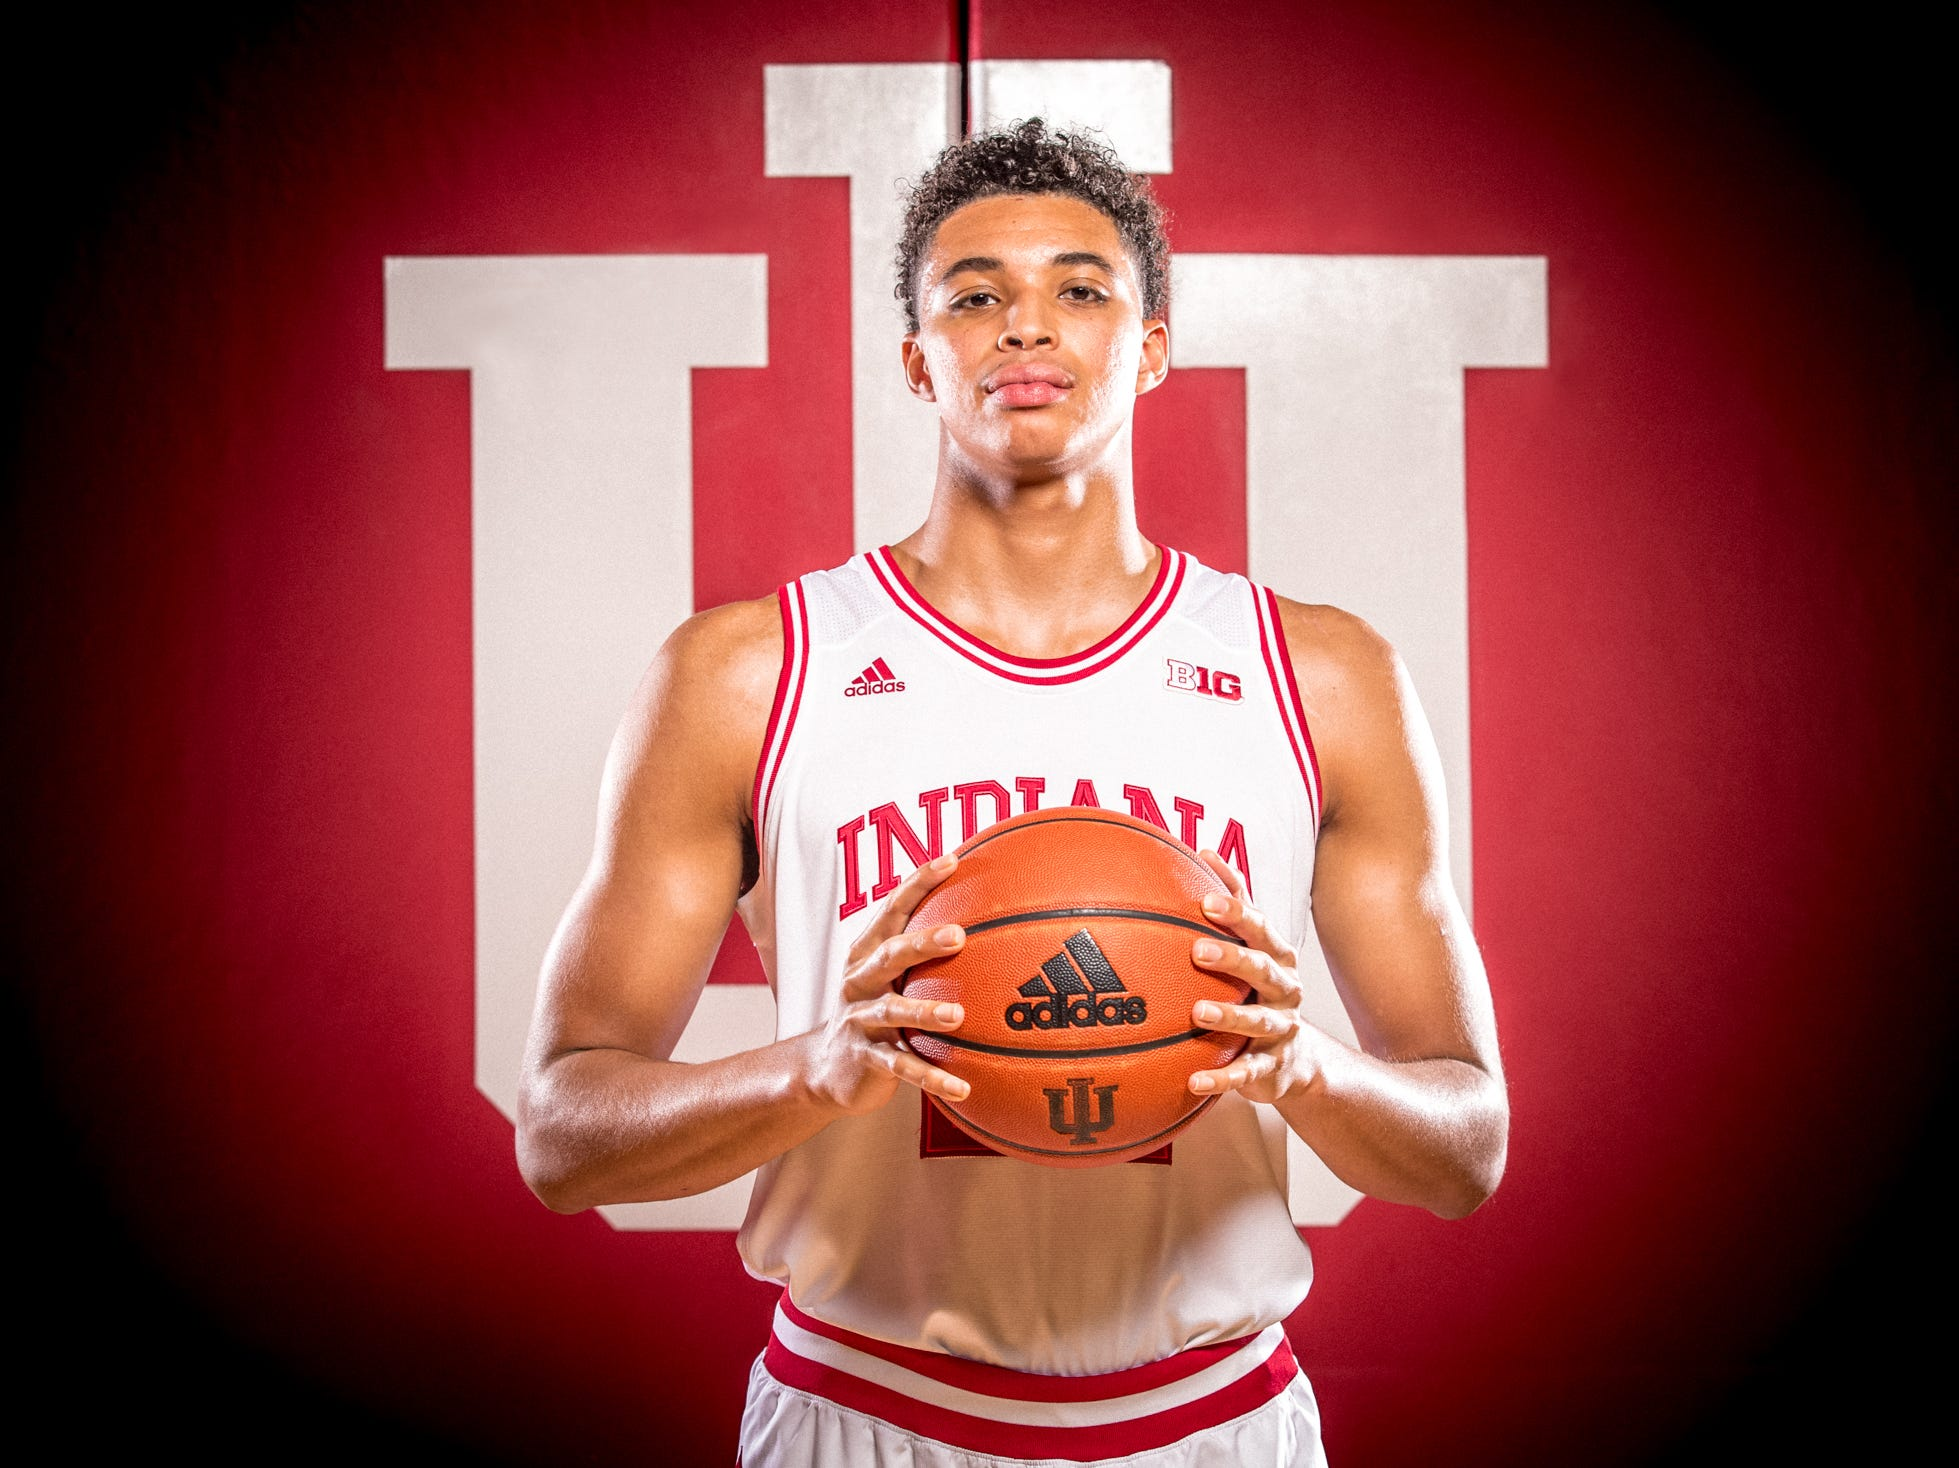 Clifton Moore is photographed during Indiana University Media Day at Simon Skjodt Assembly Hall on Wednesday, Sept. 26, 2018.